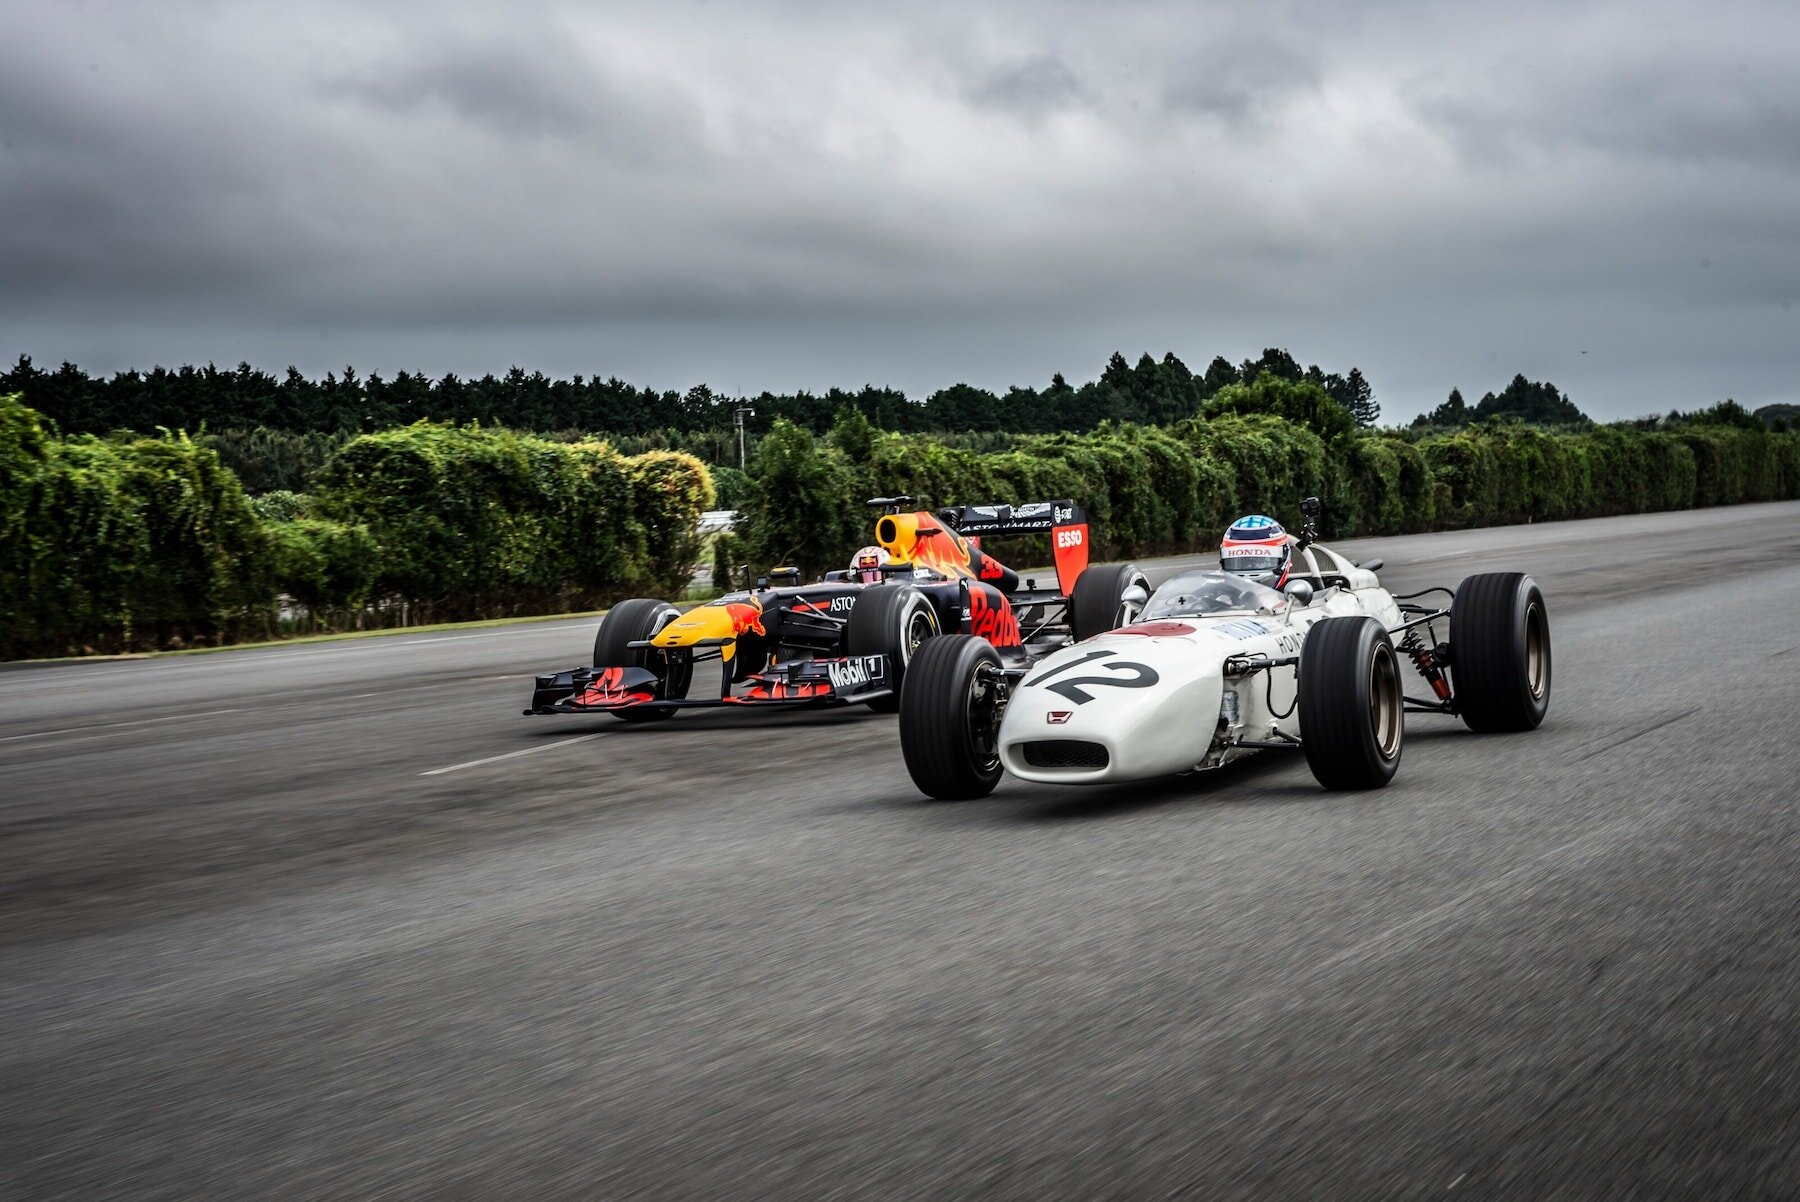 2019 Old and New RA272 and RB7 at Japan 3.jpg